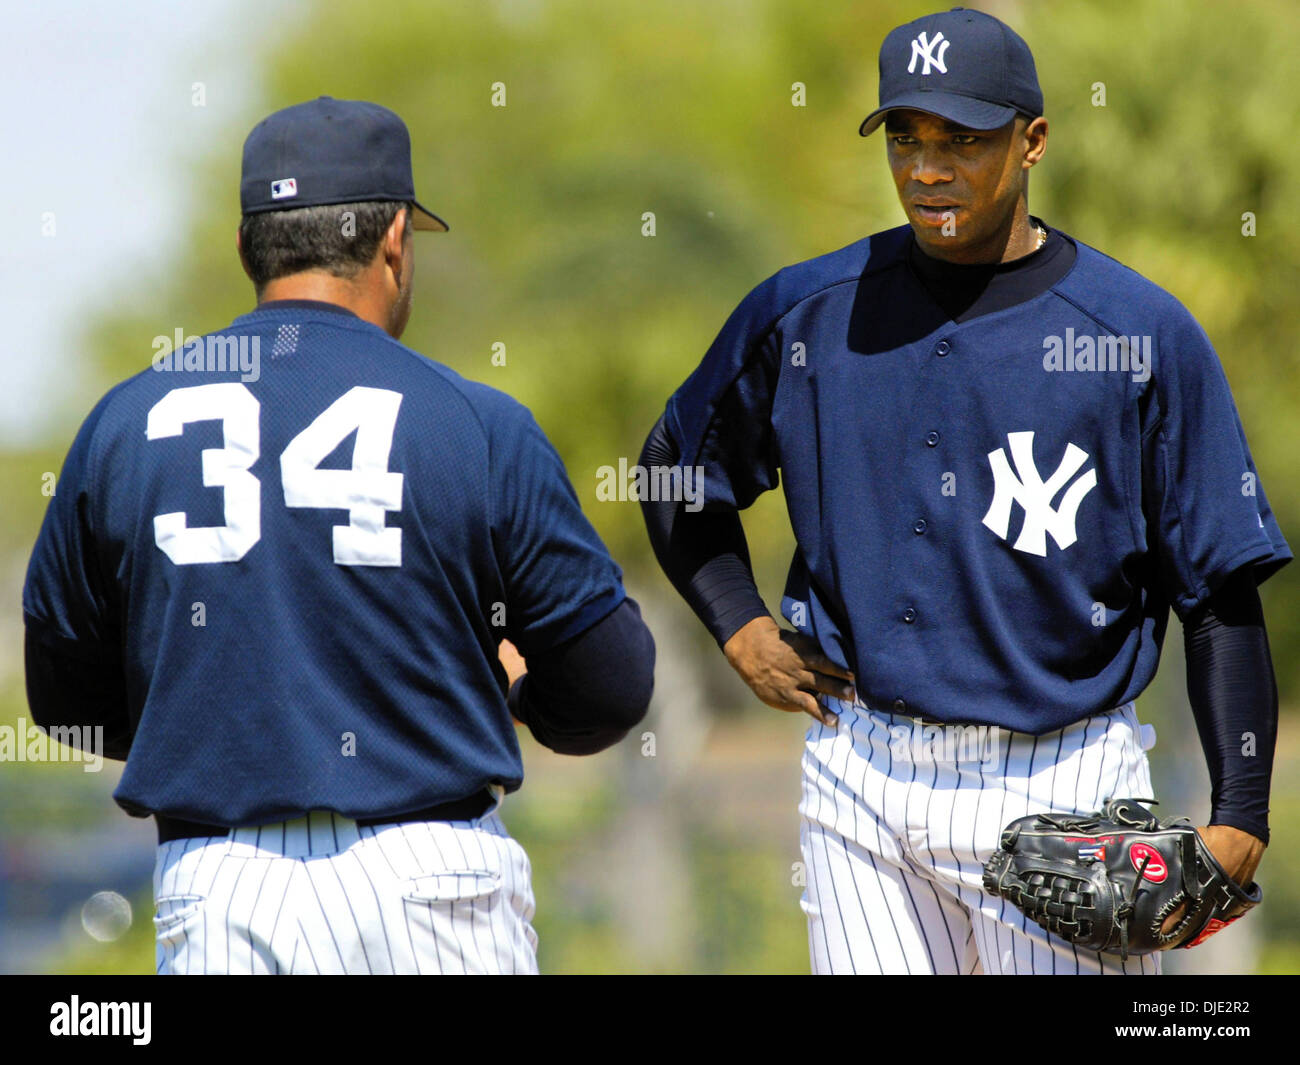 445b27859 New York Yankees Coach Stock Photos   New York Yankees Coach Stock ...